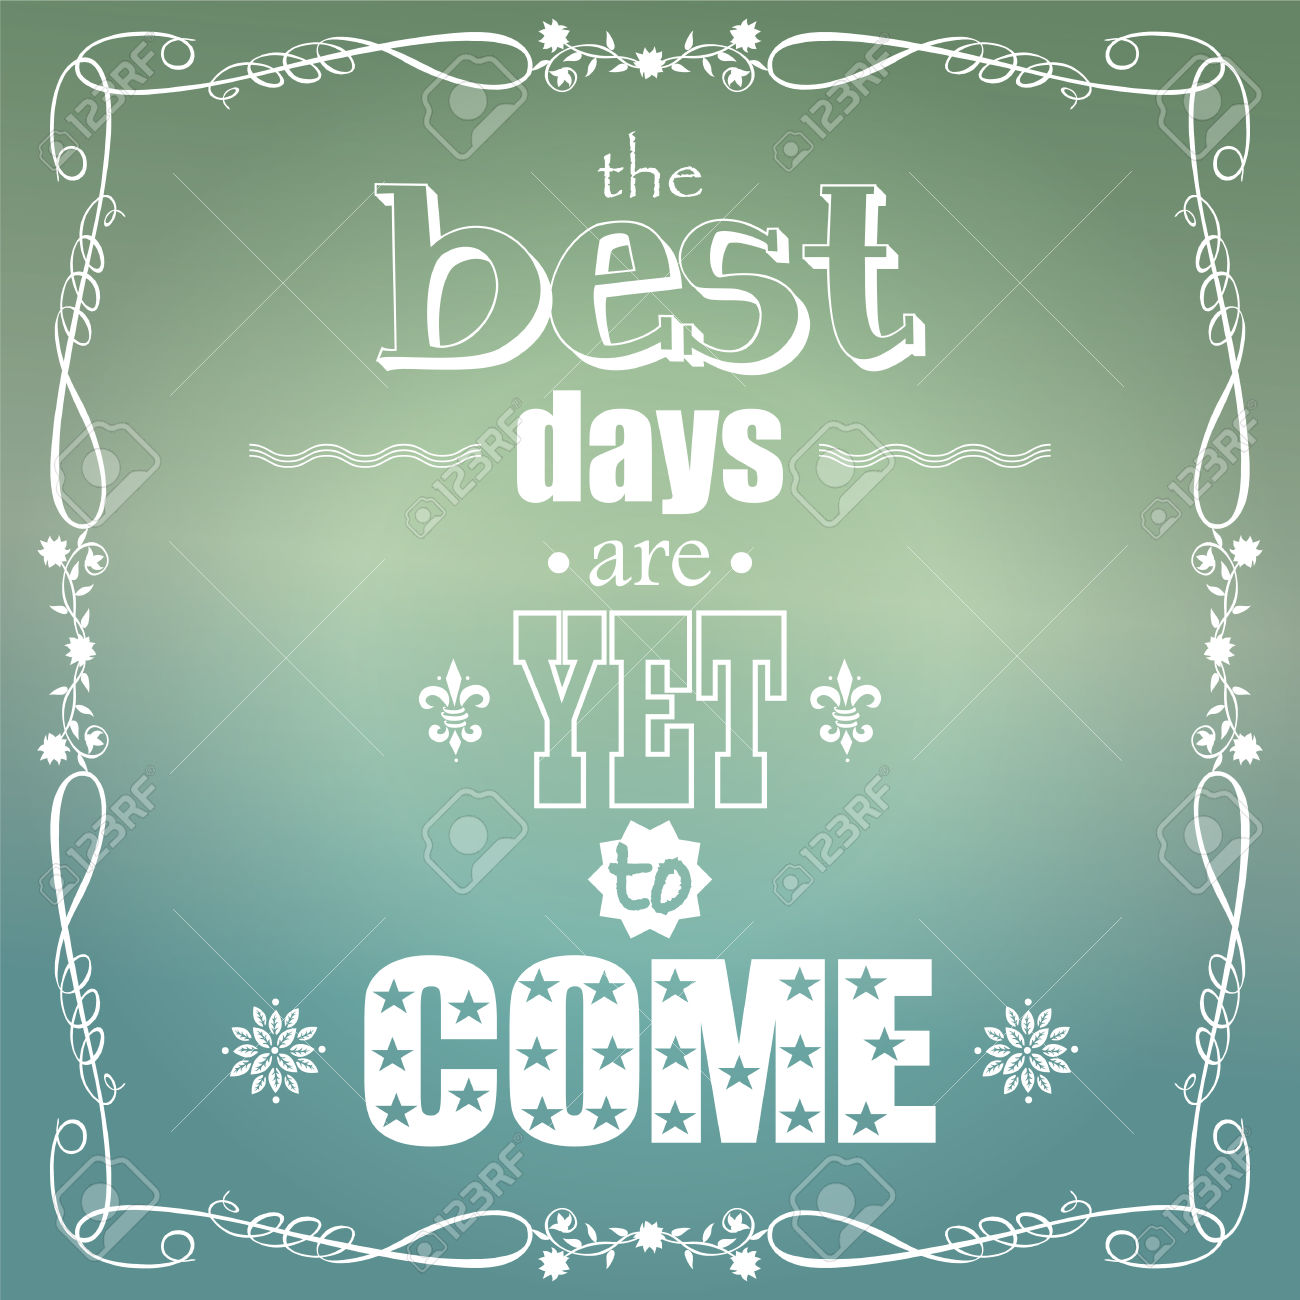 Photo:  24876124-The-best-days-are-yet-to-come-quote-typographical-background-Stock-Vector